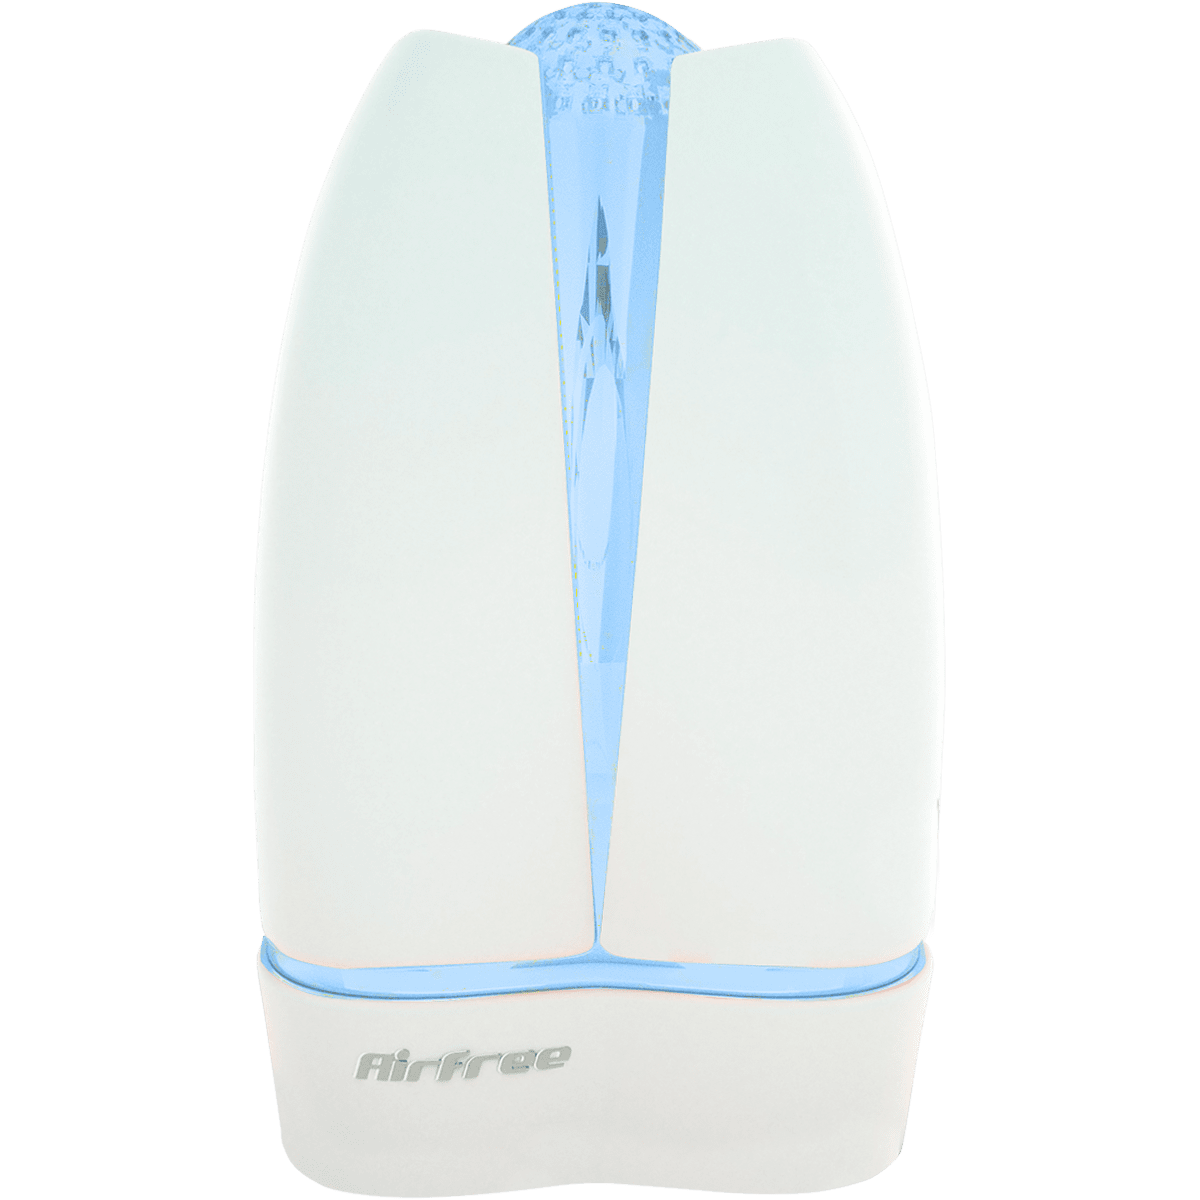 AirFree Lotus Filterless Air Purifier & Sterilizer ai5165